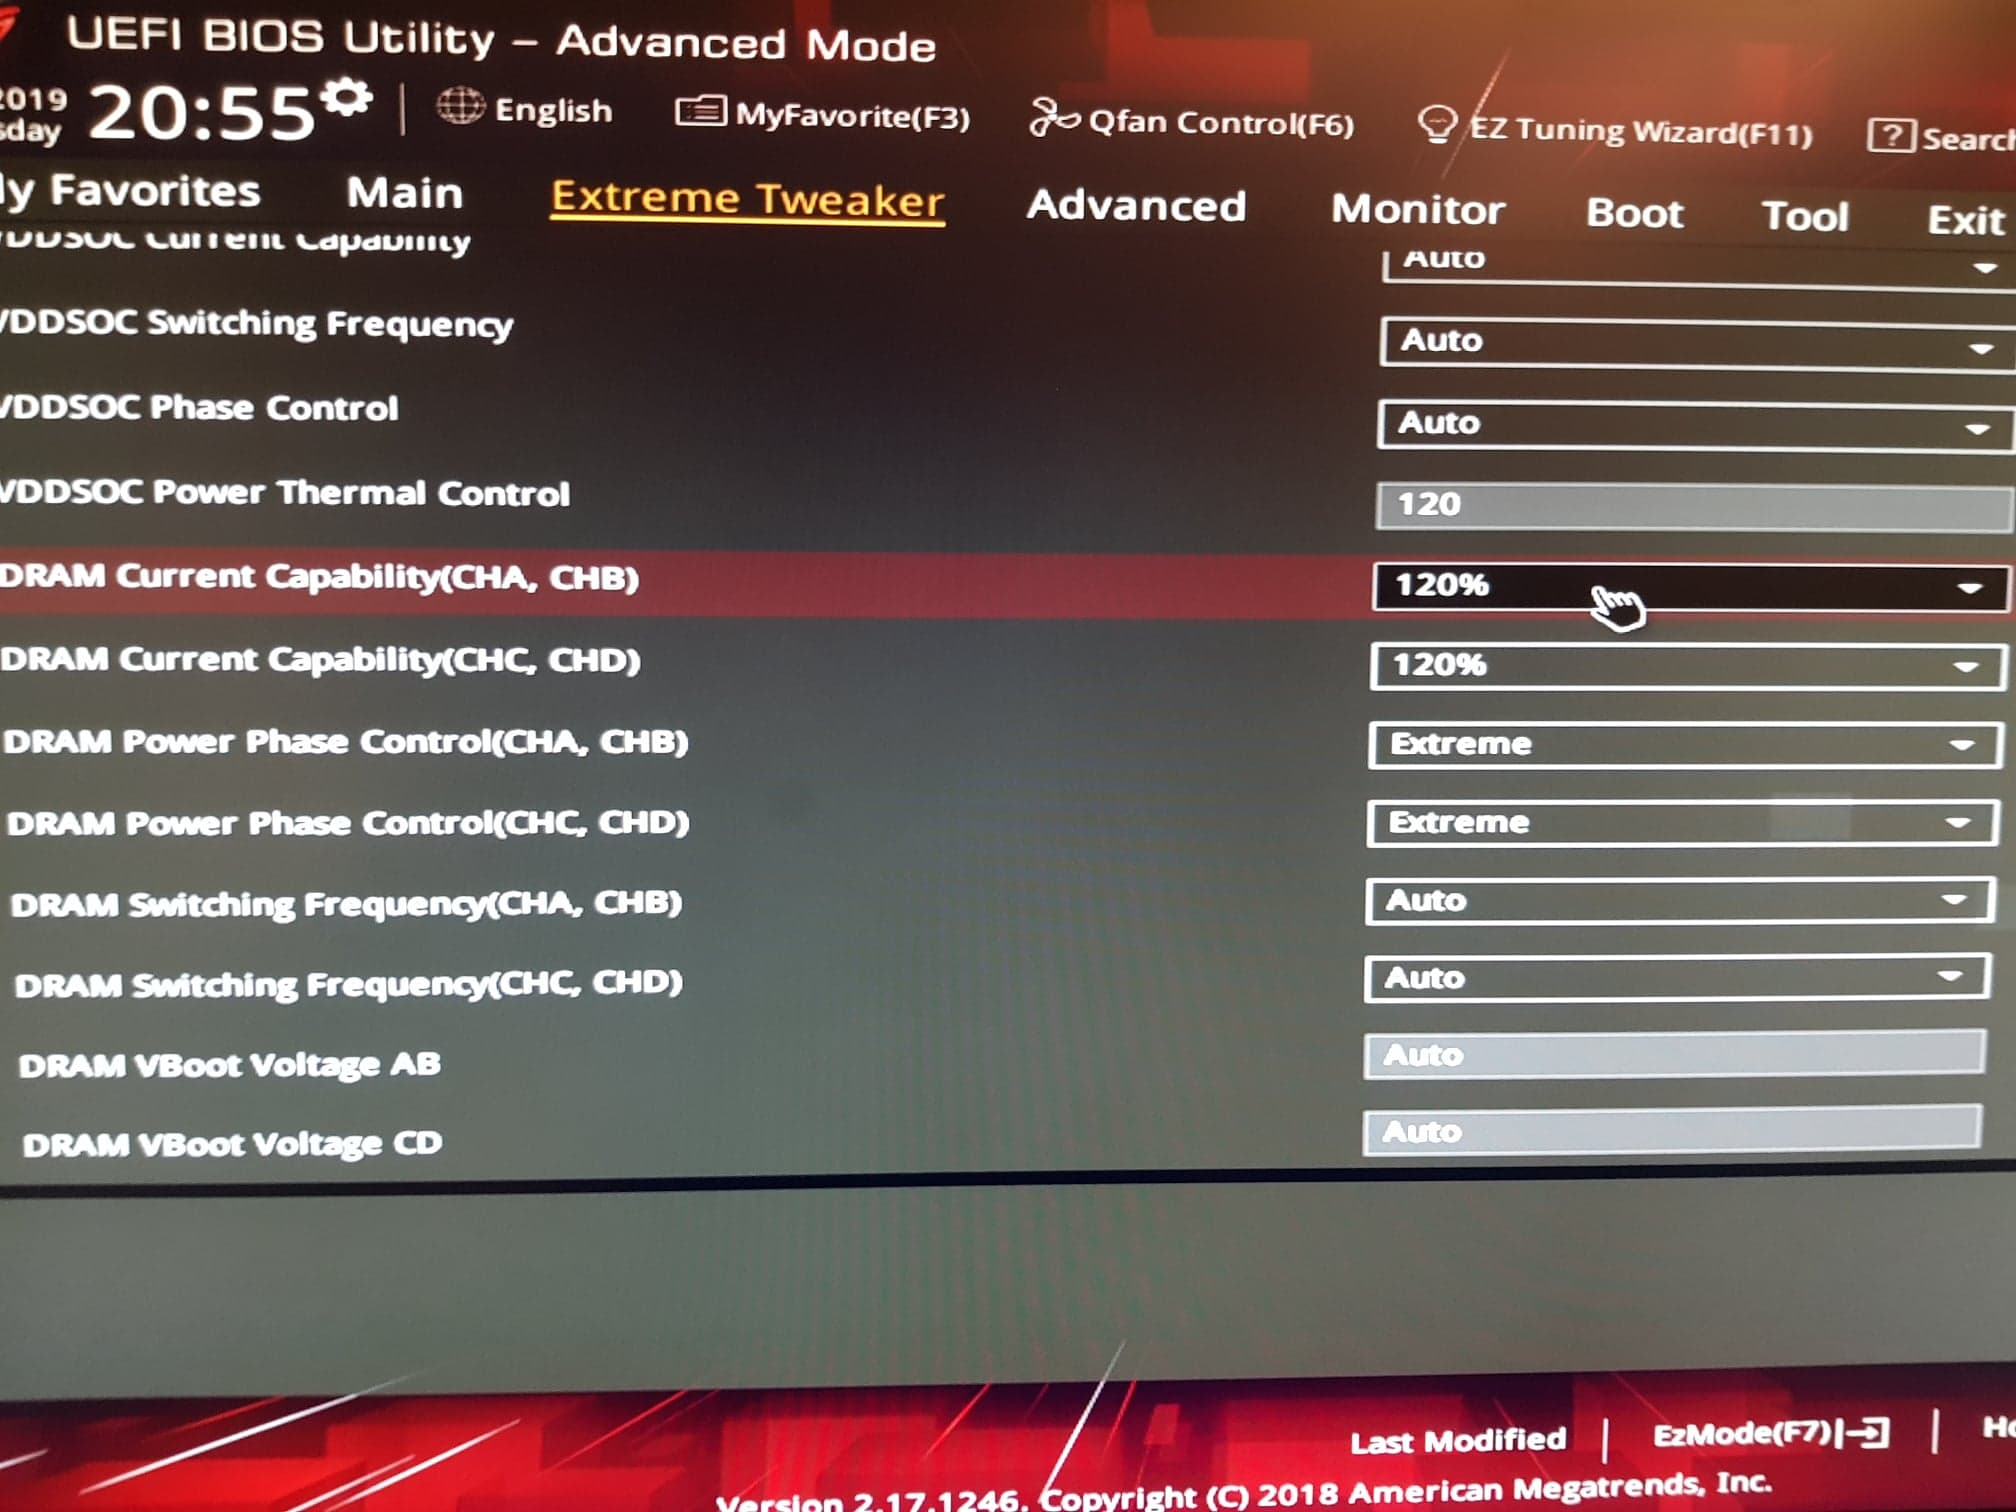 2990wx / Asus ROG zenith extreme alpha / 128gb G skill CL14 build